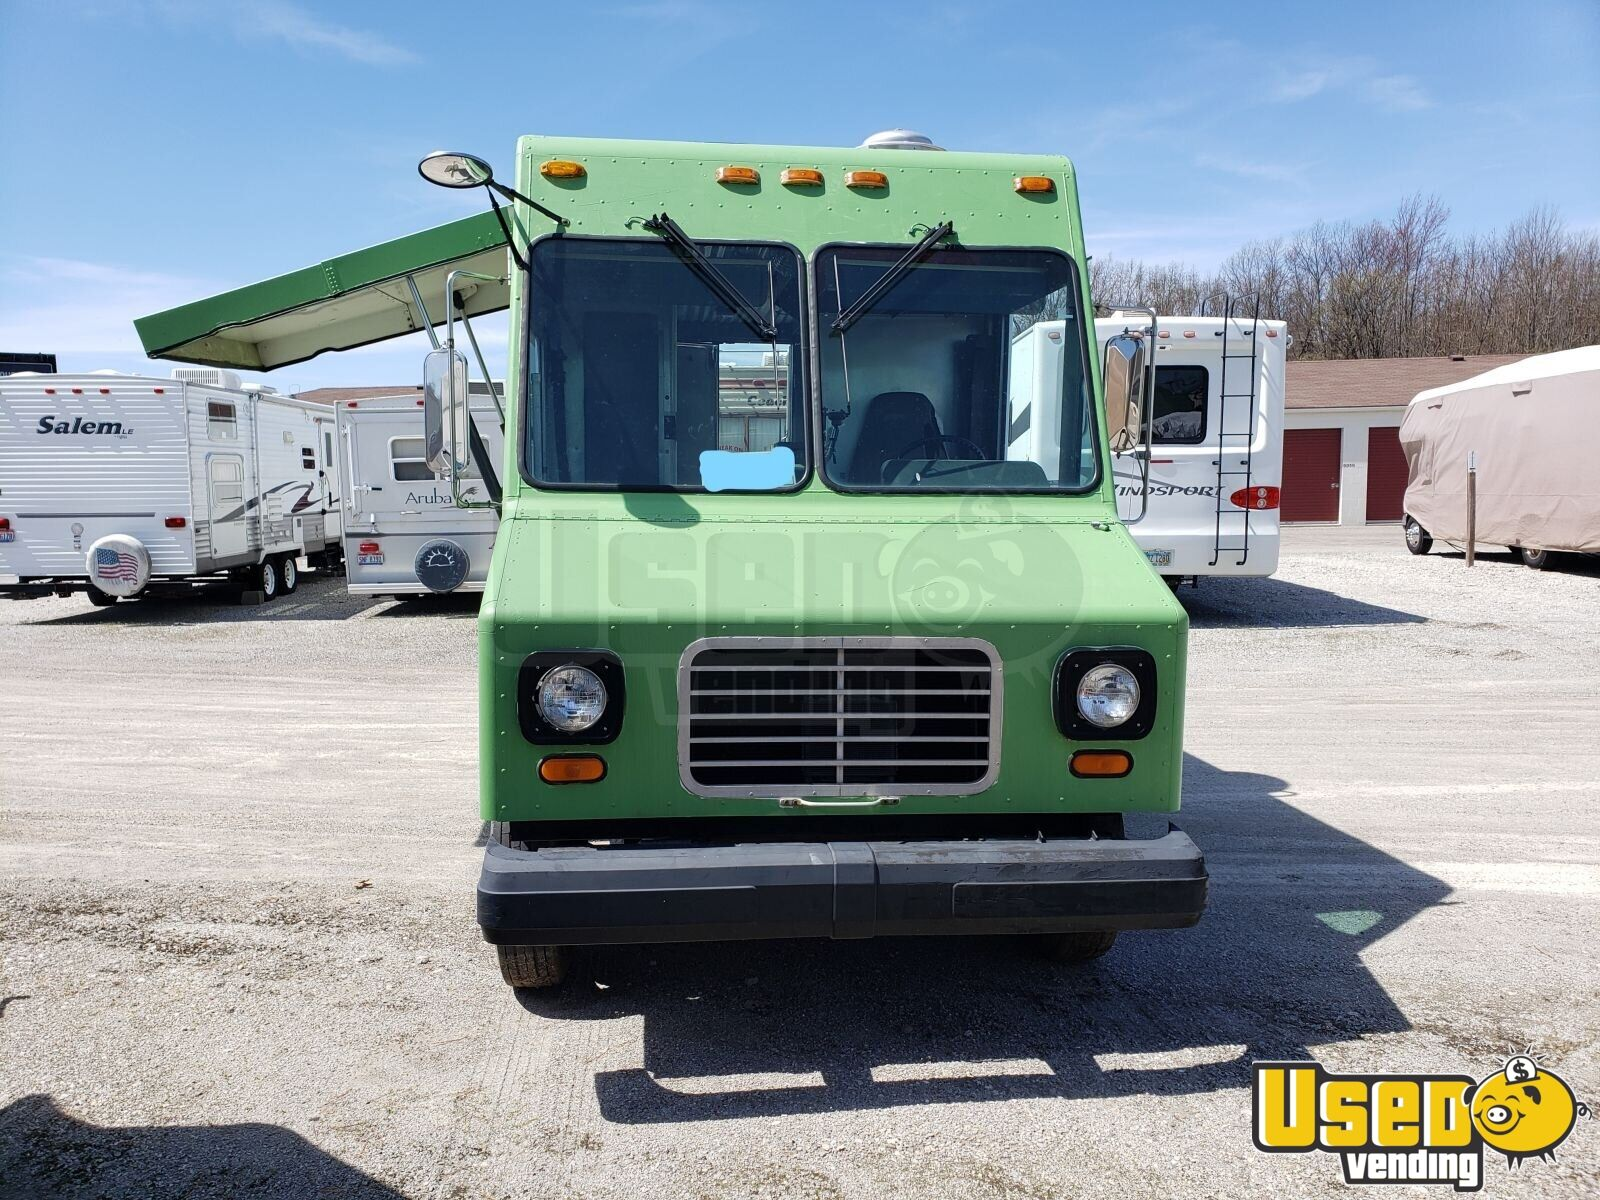 1995 Chevy P30 Utilimaster Food Truck Air Conditioning Ohio Diesel Engine for Sale - 2